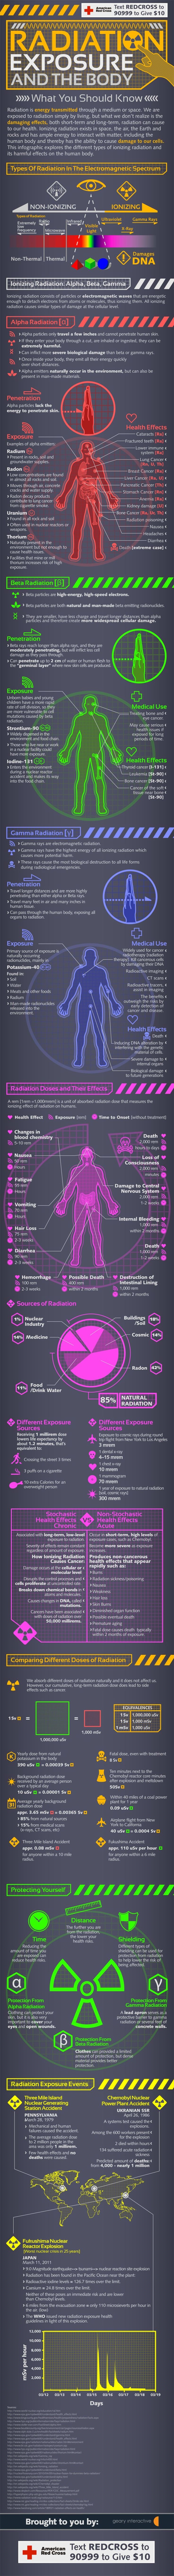 Radiation & The Body: What You Should Know (Infographic) - mindbodygreen